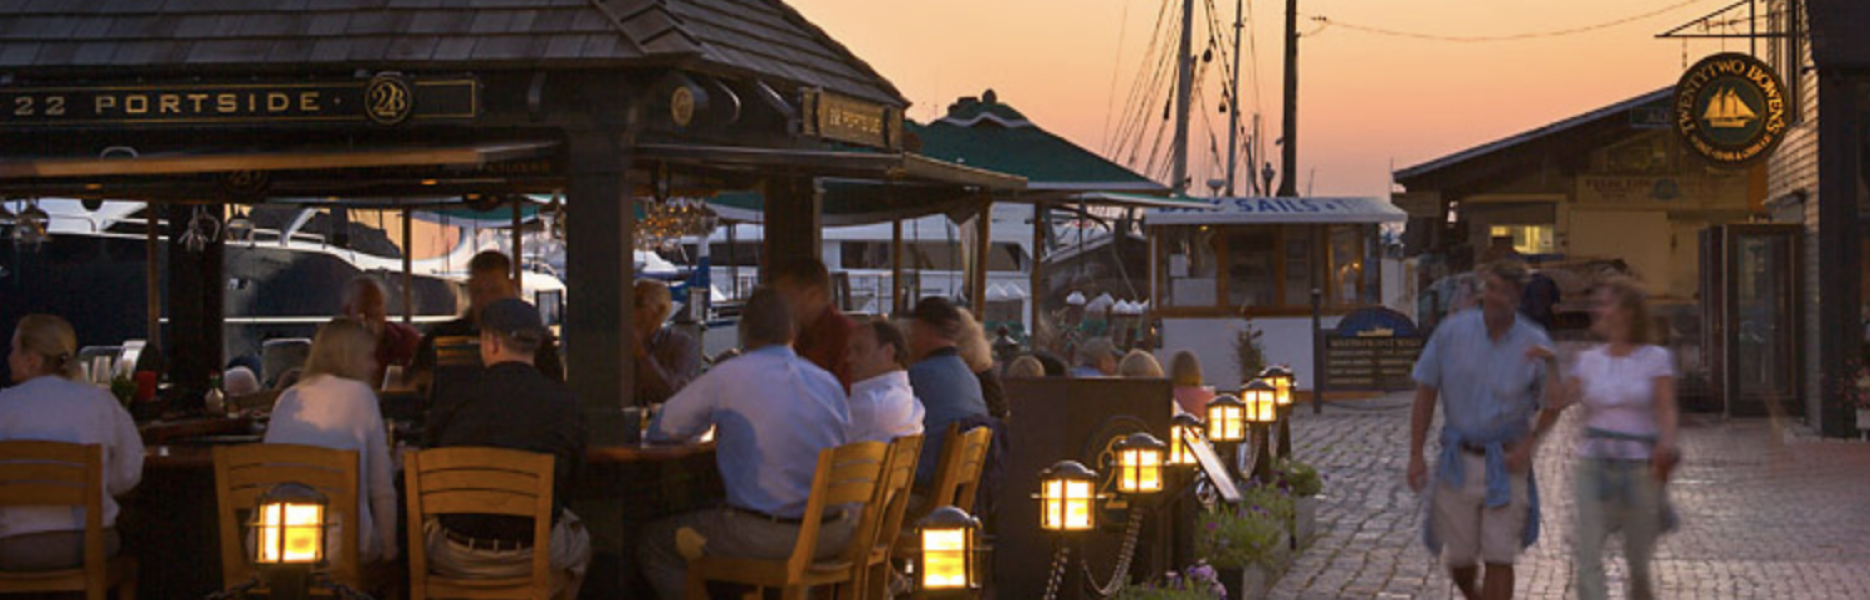 Best Outdoor Bars in Newport, RI